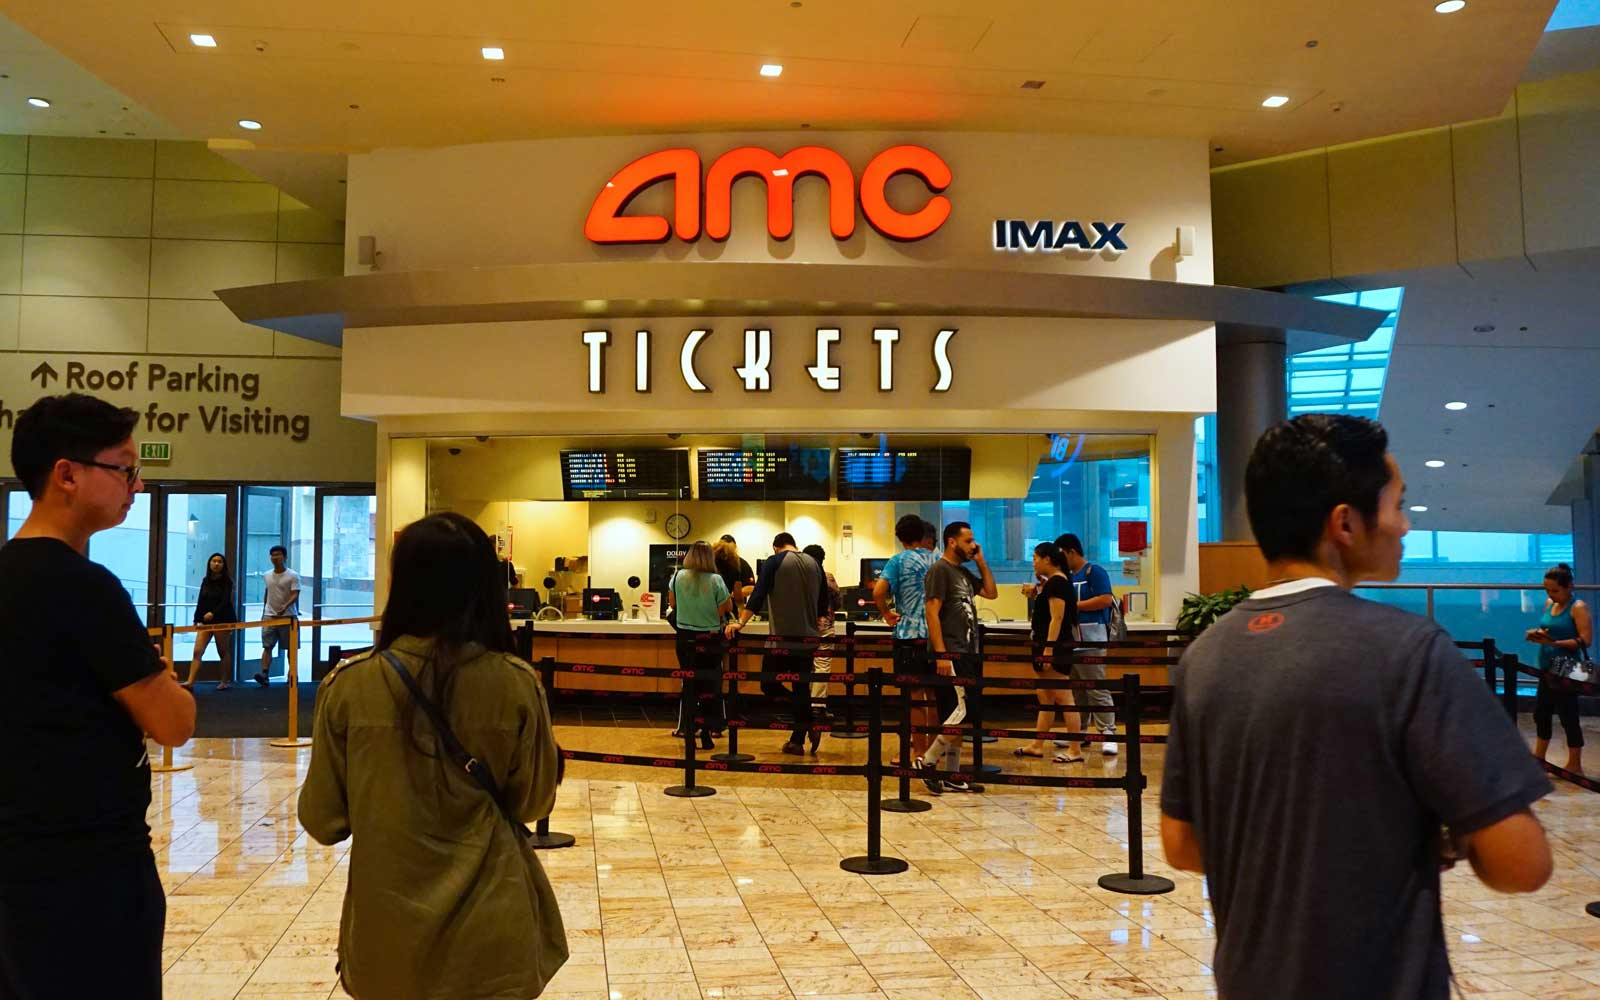 Movie goers purchase tickets at an AMC movie theater in Arcadia, California